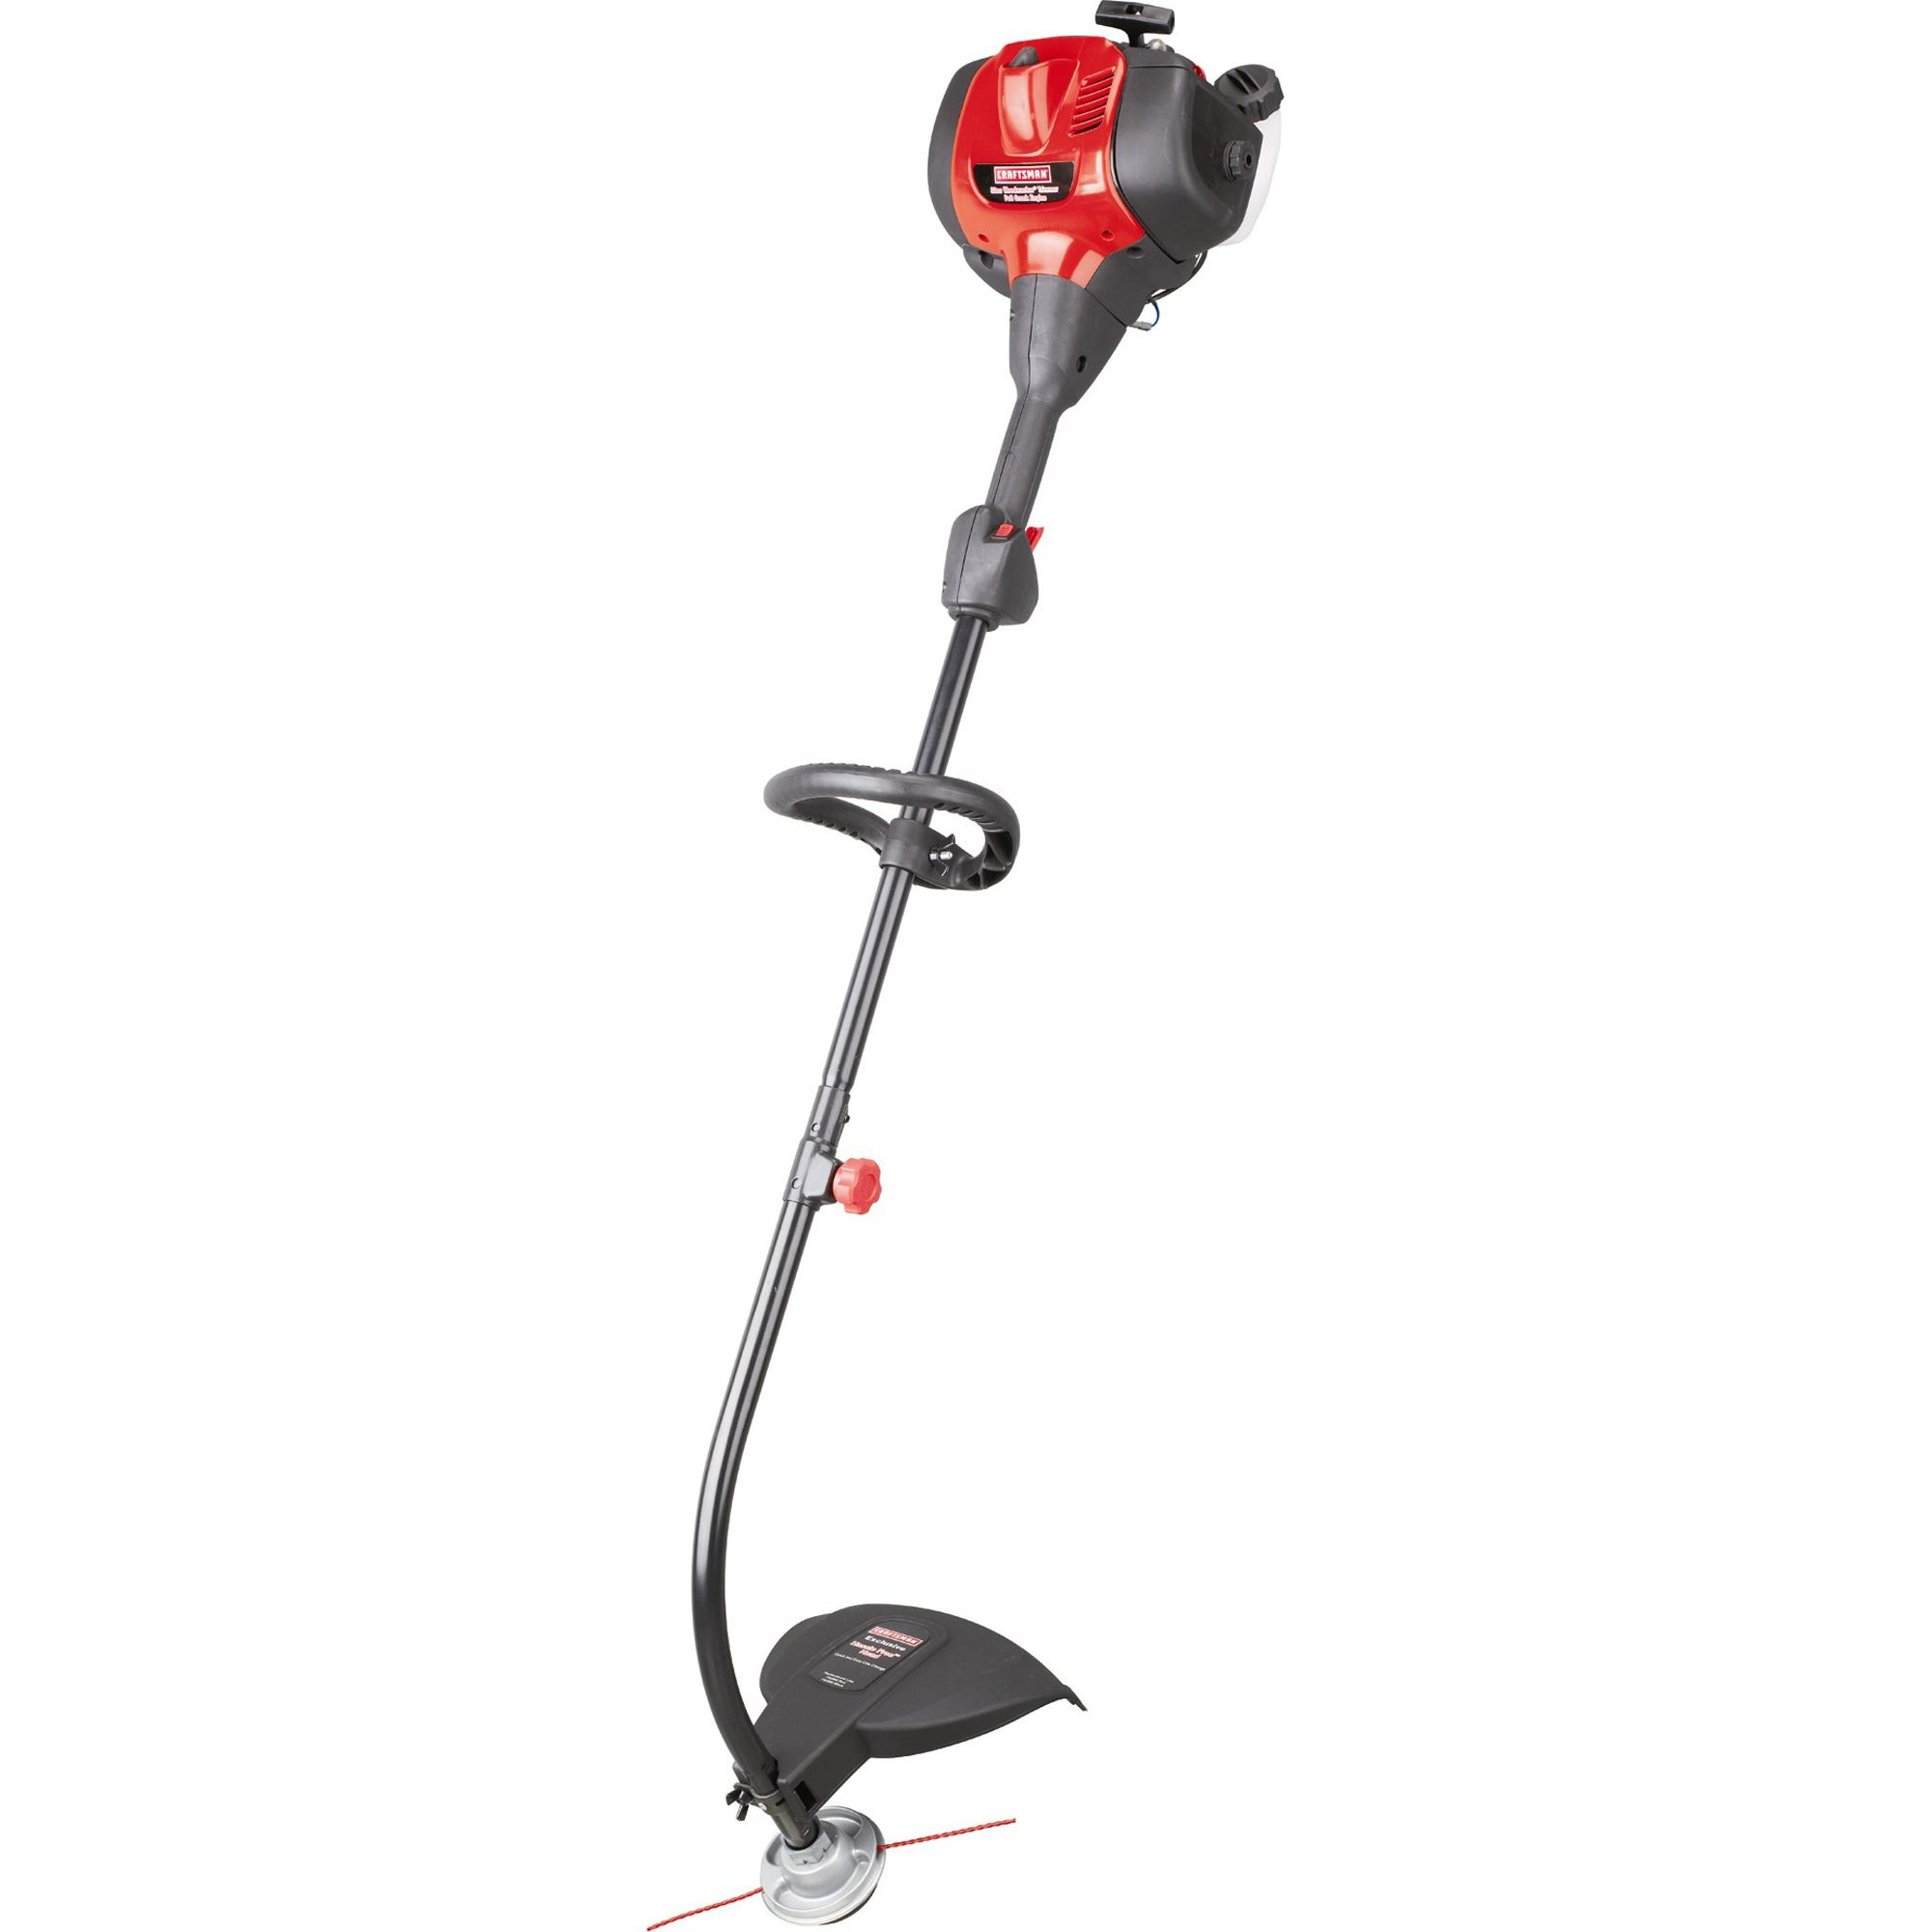 Gardenline Online Shop Craftsman 33cc Full Crank Gas Curved Shaft Convertible